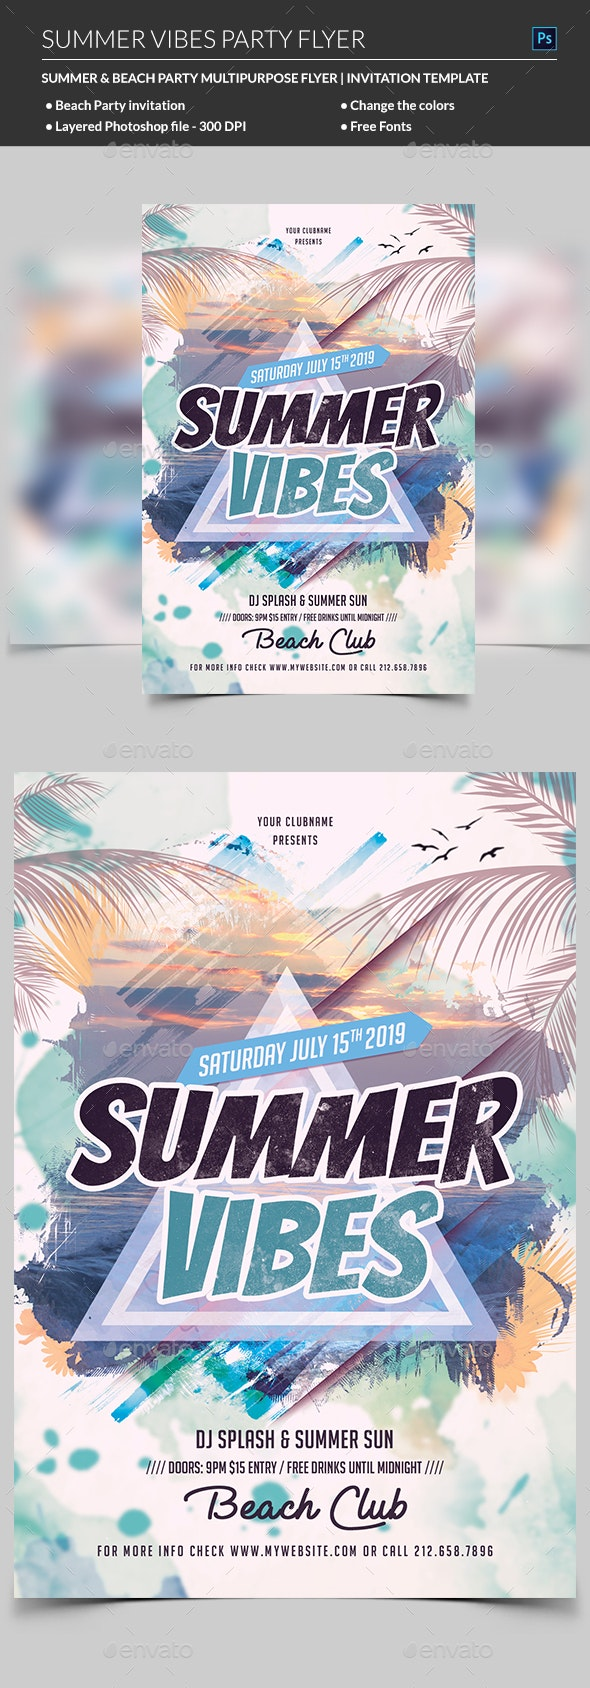 Summer Vibes Dj Flyer - Clubs & Parties Events